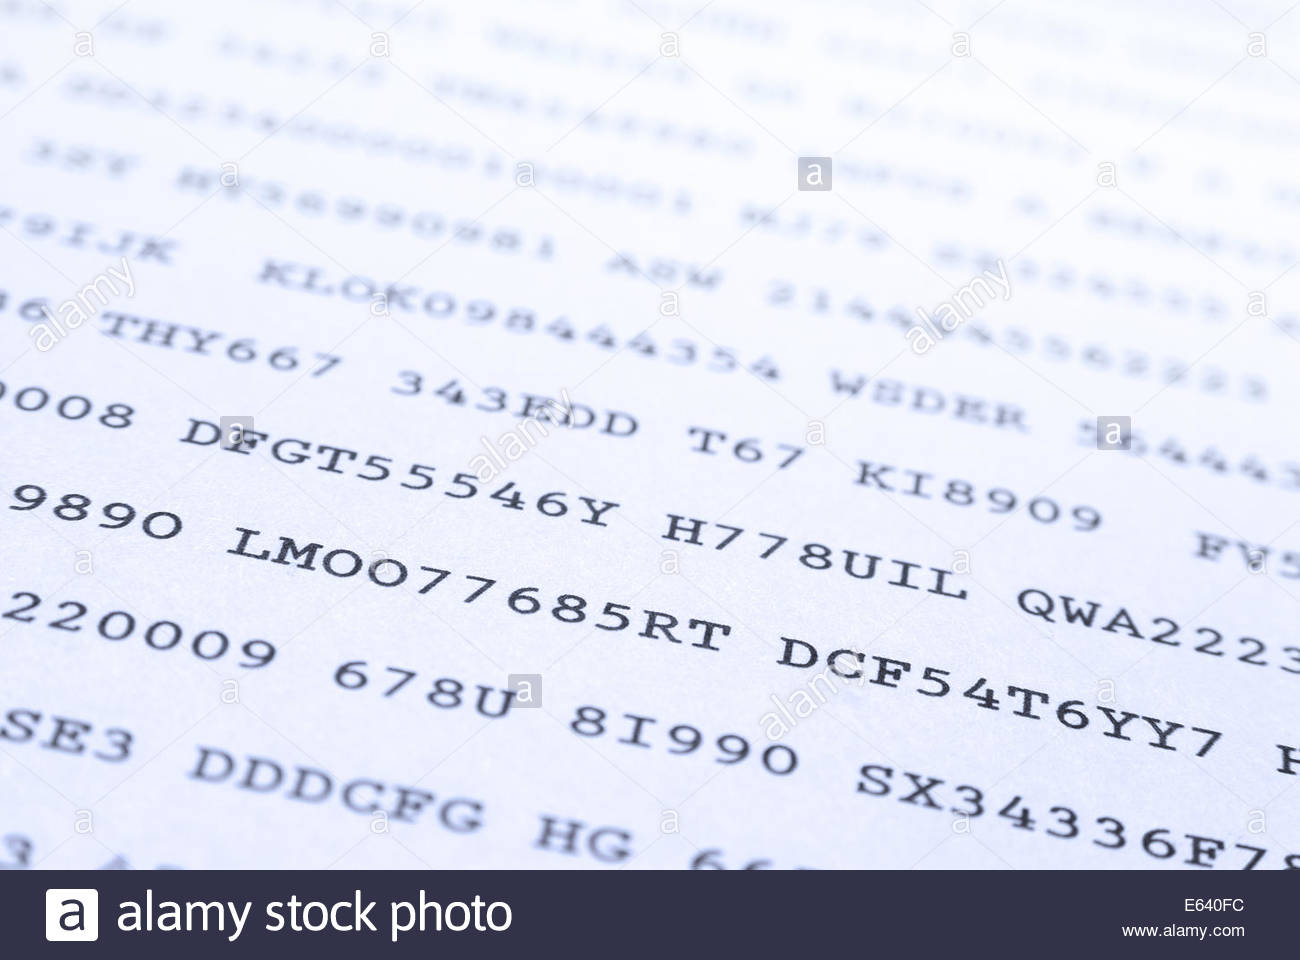 Secret codes printed on paper - Stock Image